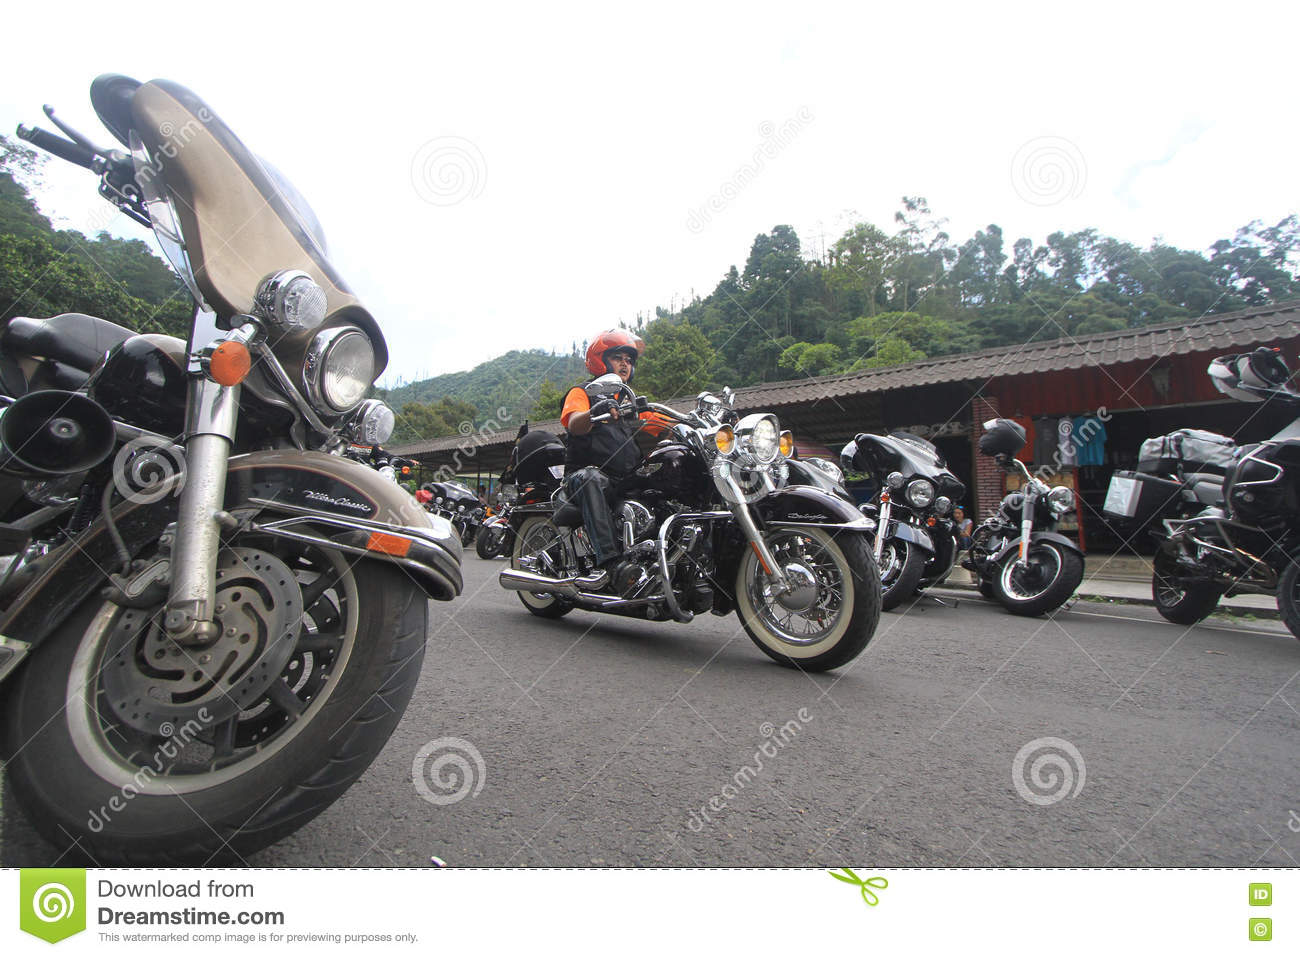 Harley lovers gather